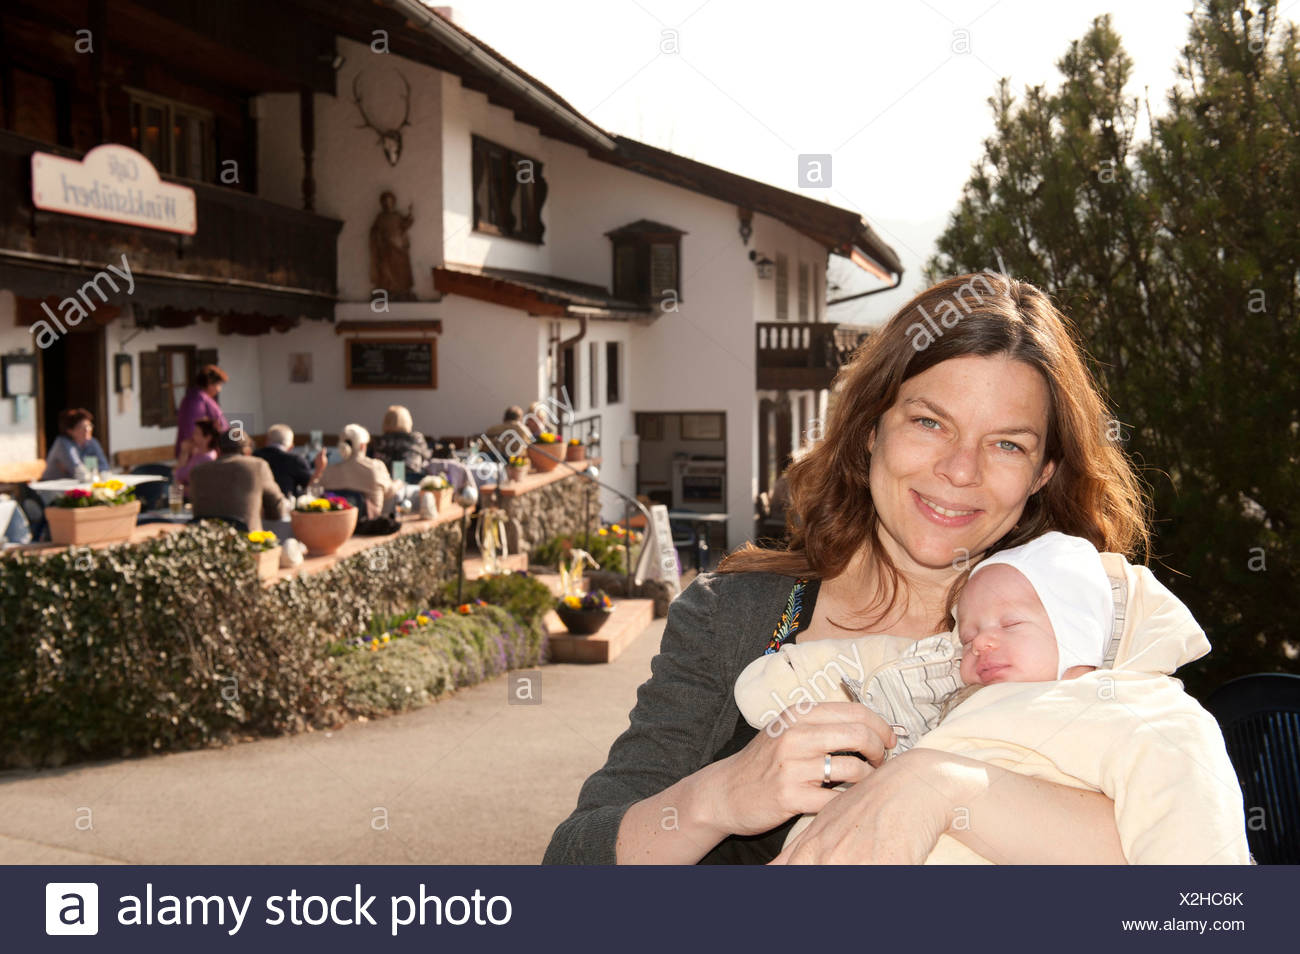 Smiling mother with sleeping newborn baby in her arms, dressed warm, terrace of the restaurant Cafe Winklstueberl, Fischbachau - Stock Image